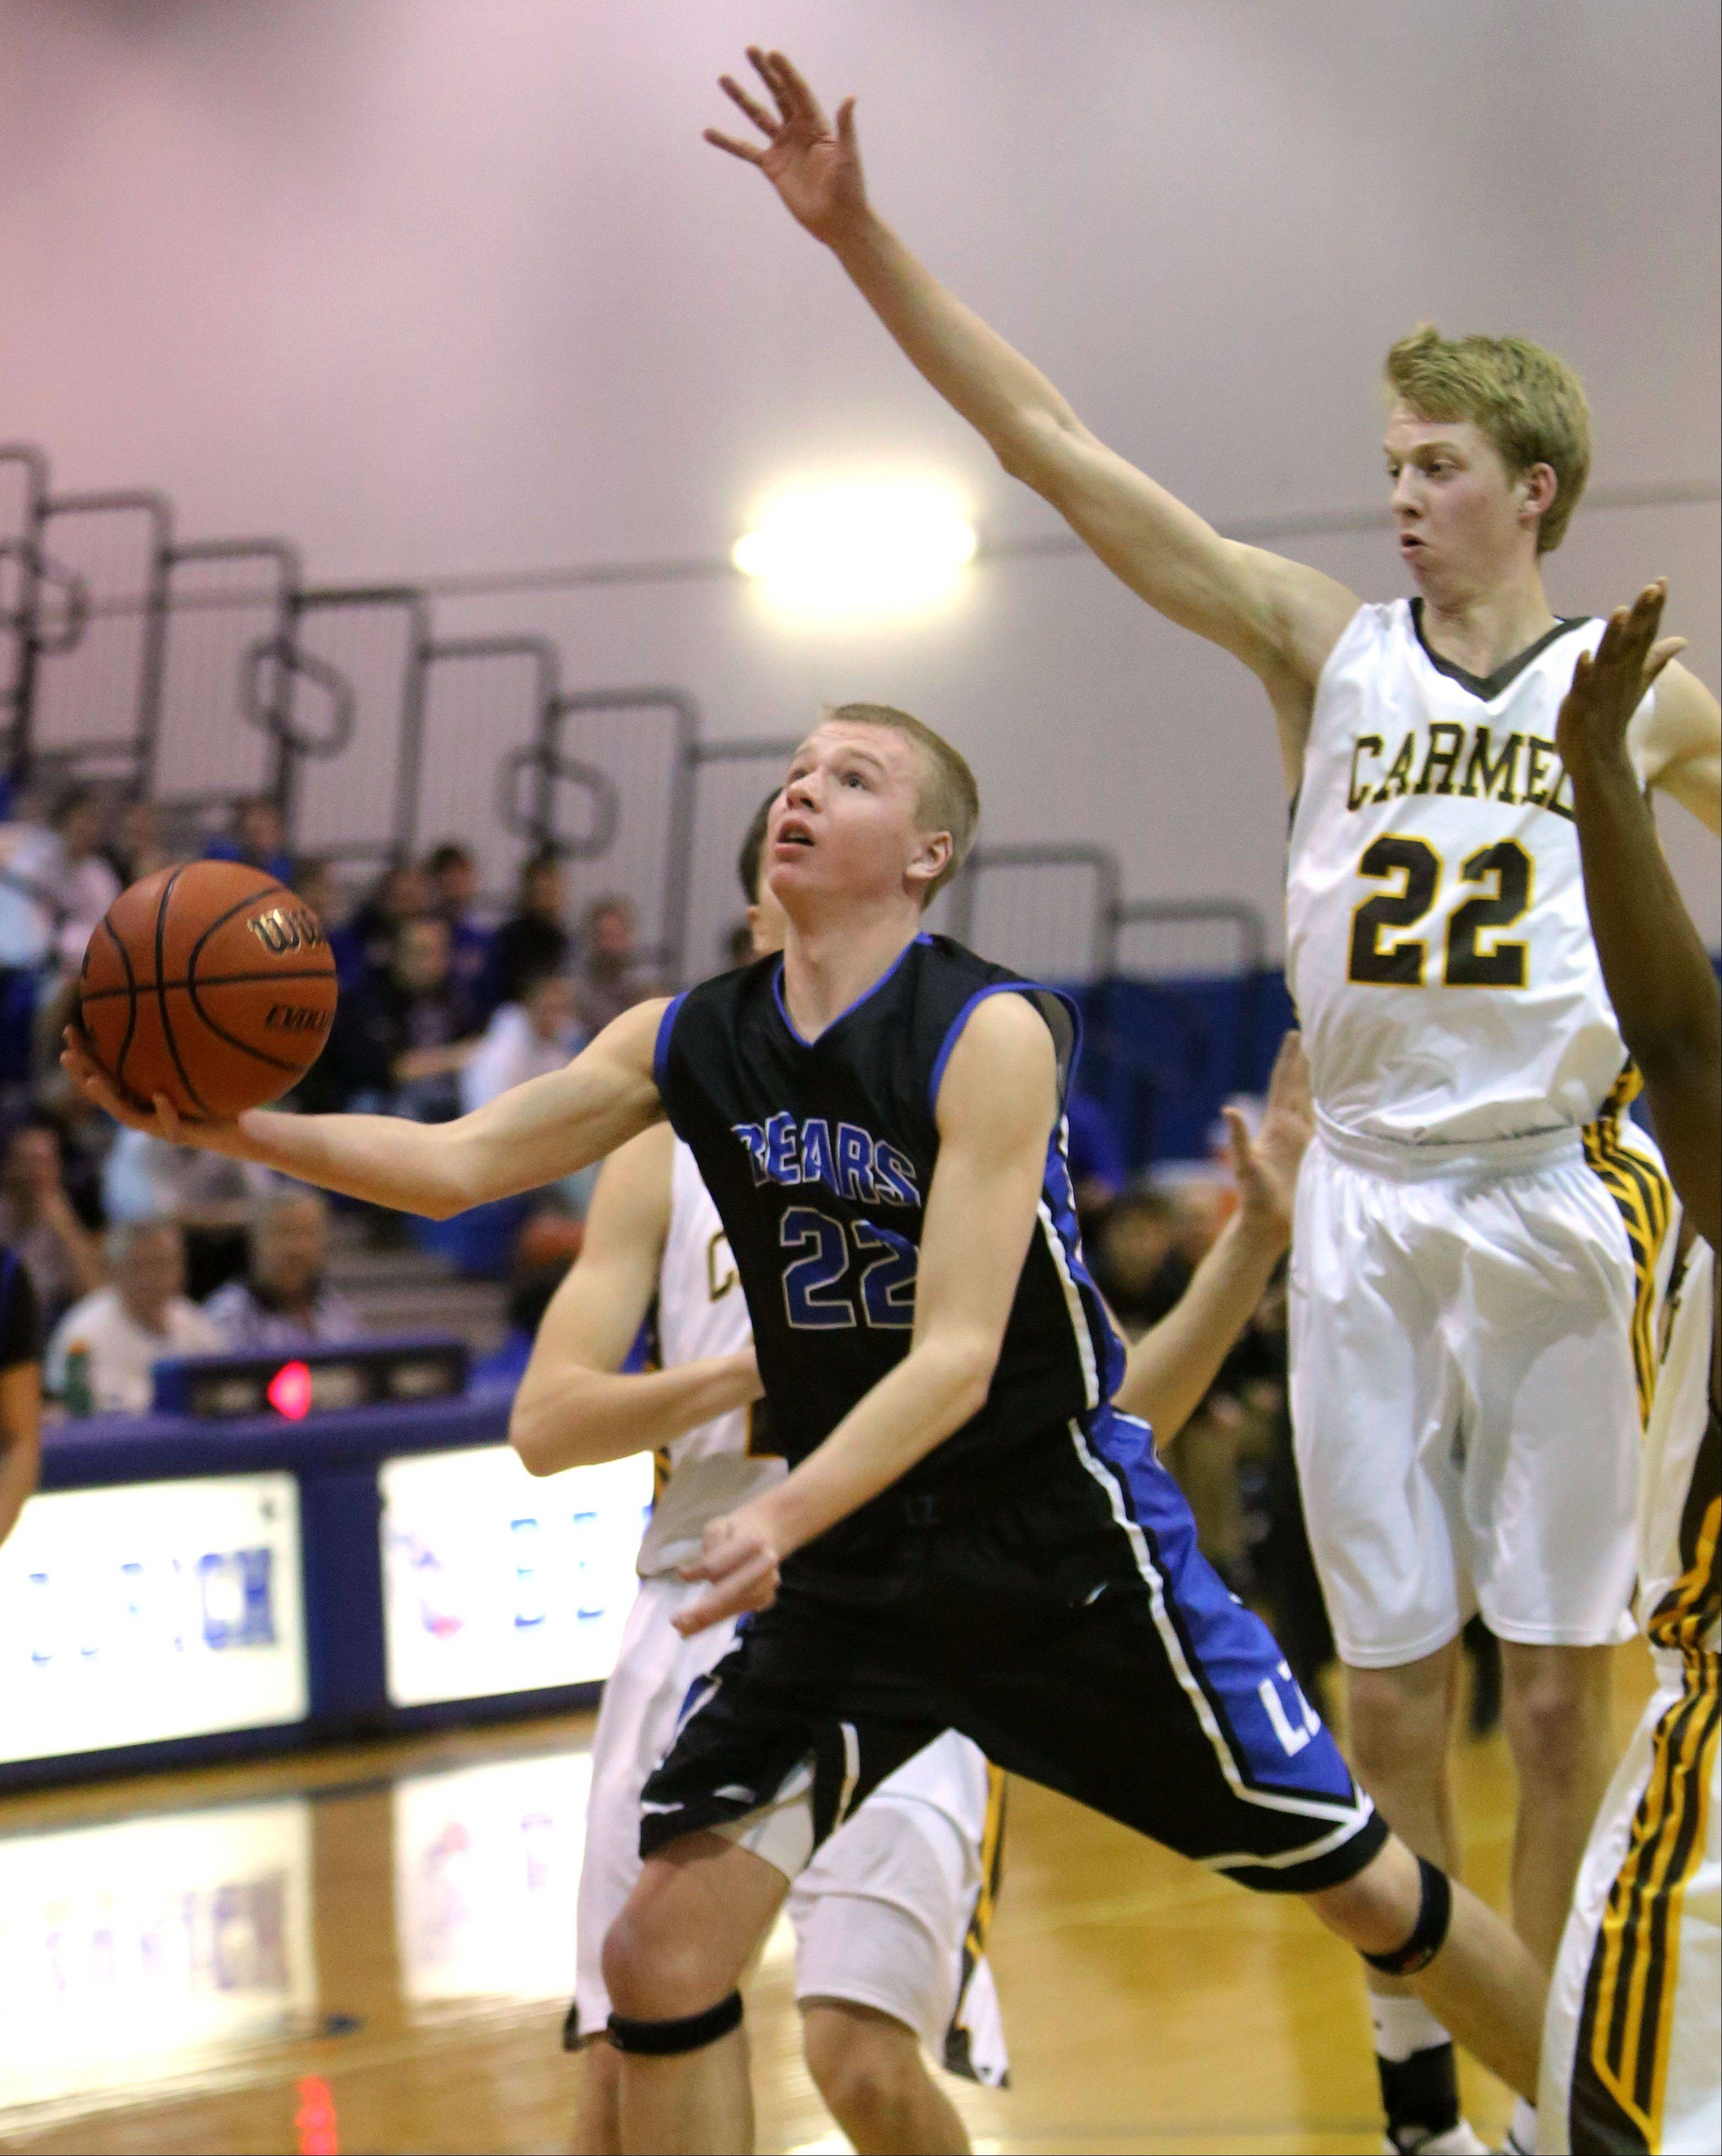 Lake Zurich's Brad Kruse, left, drives to the hoop past Carmel's Michael Barr on Monday at Lake Zurich.